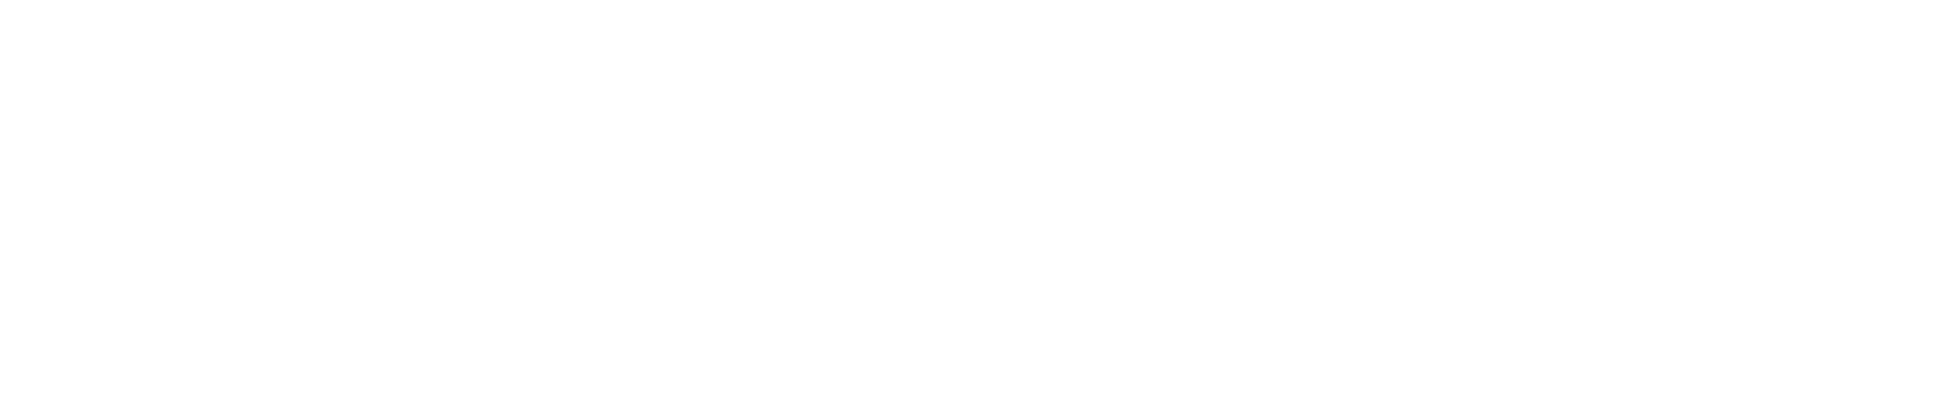 Show Package Image